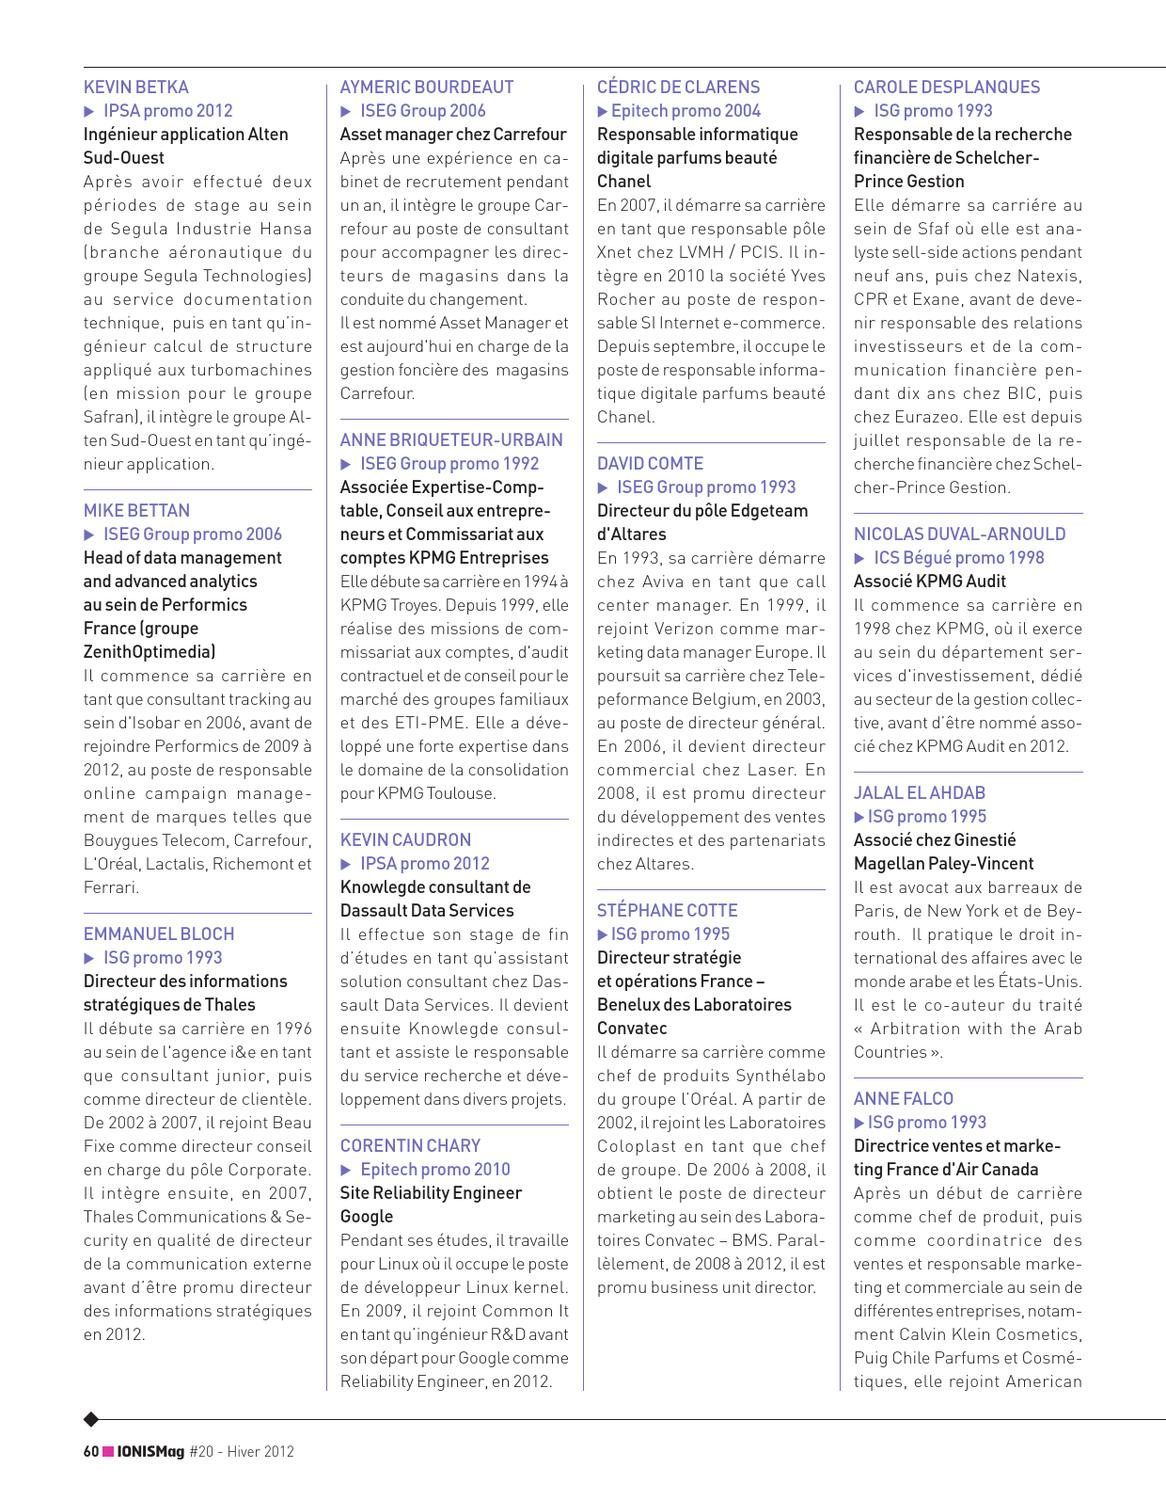 Ionis 20 Education Issuu Mag By Group iuTwZkOPX